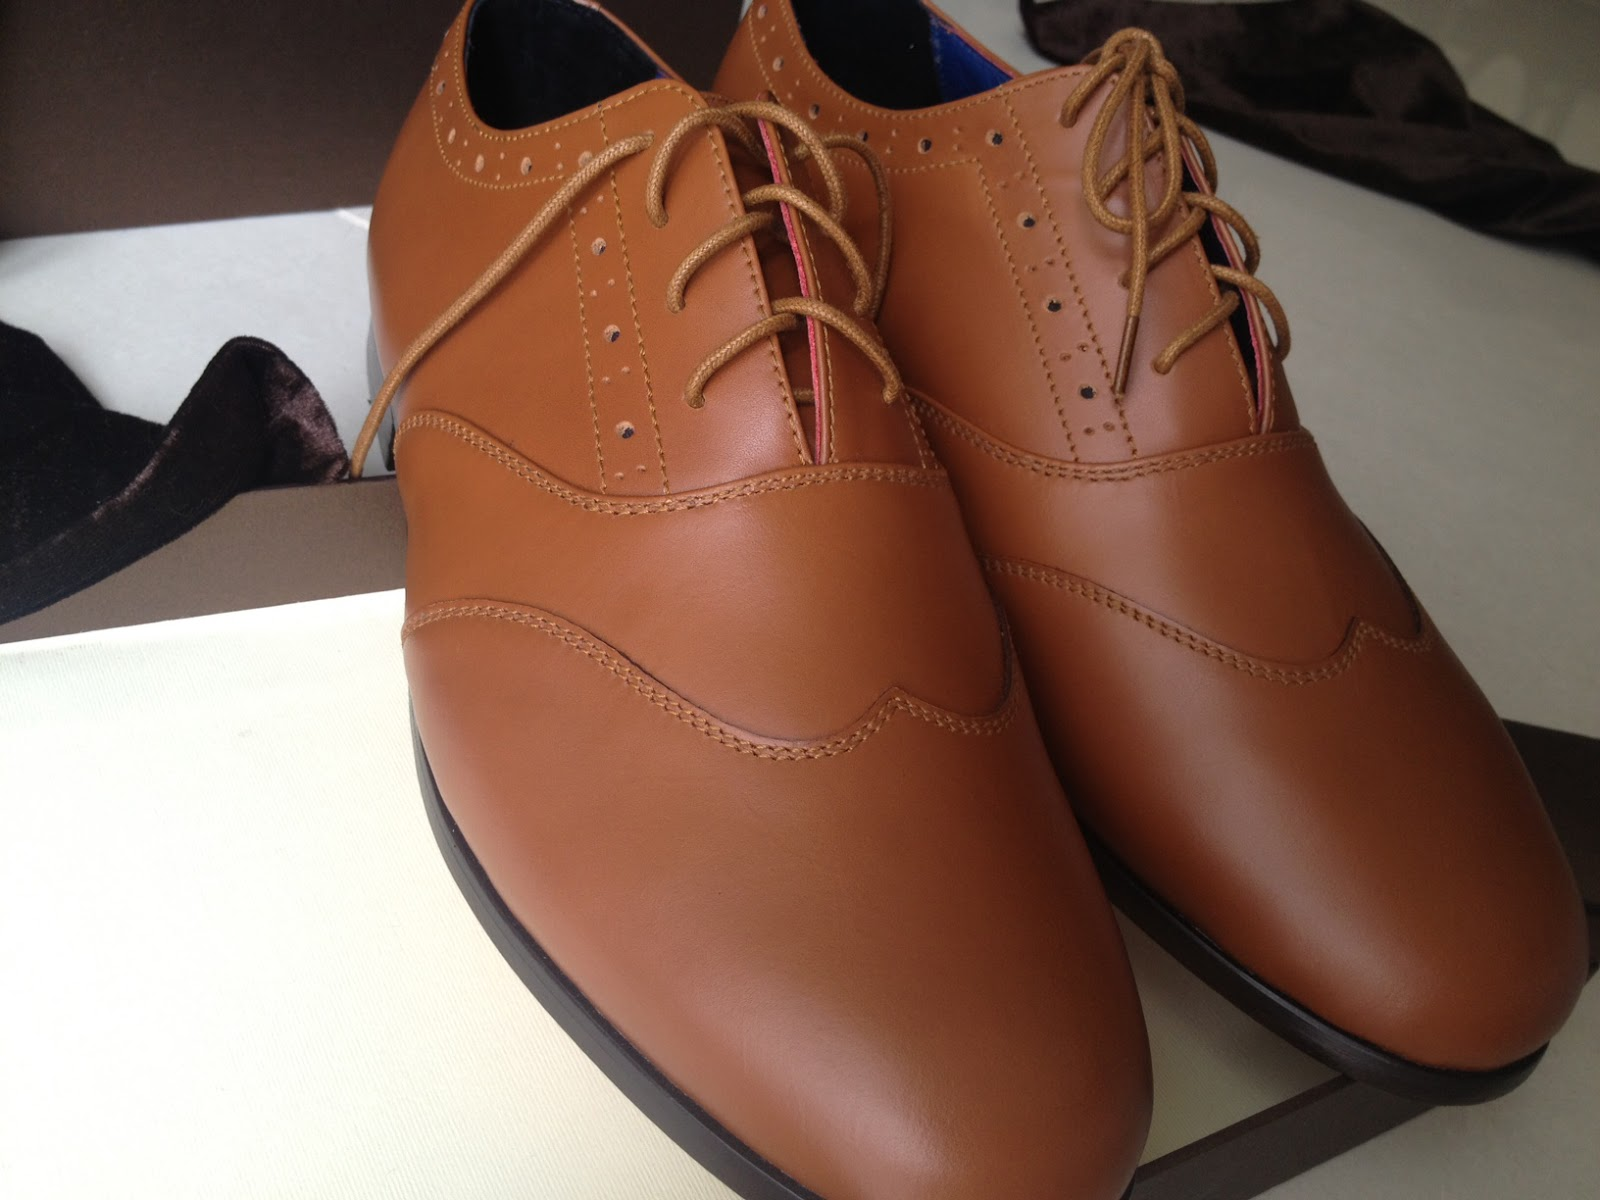 iShoe by iTailor Review - Custom shoes for just $129